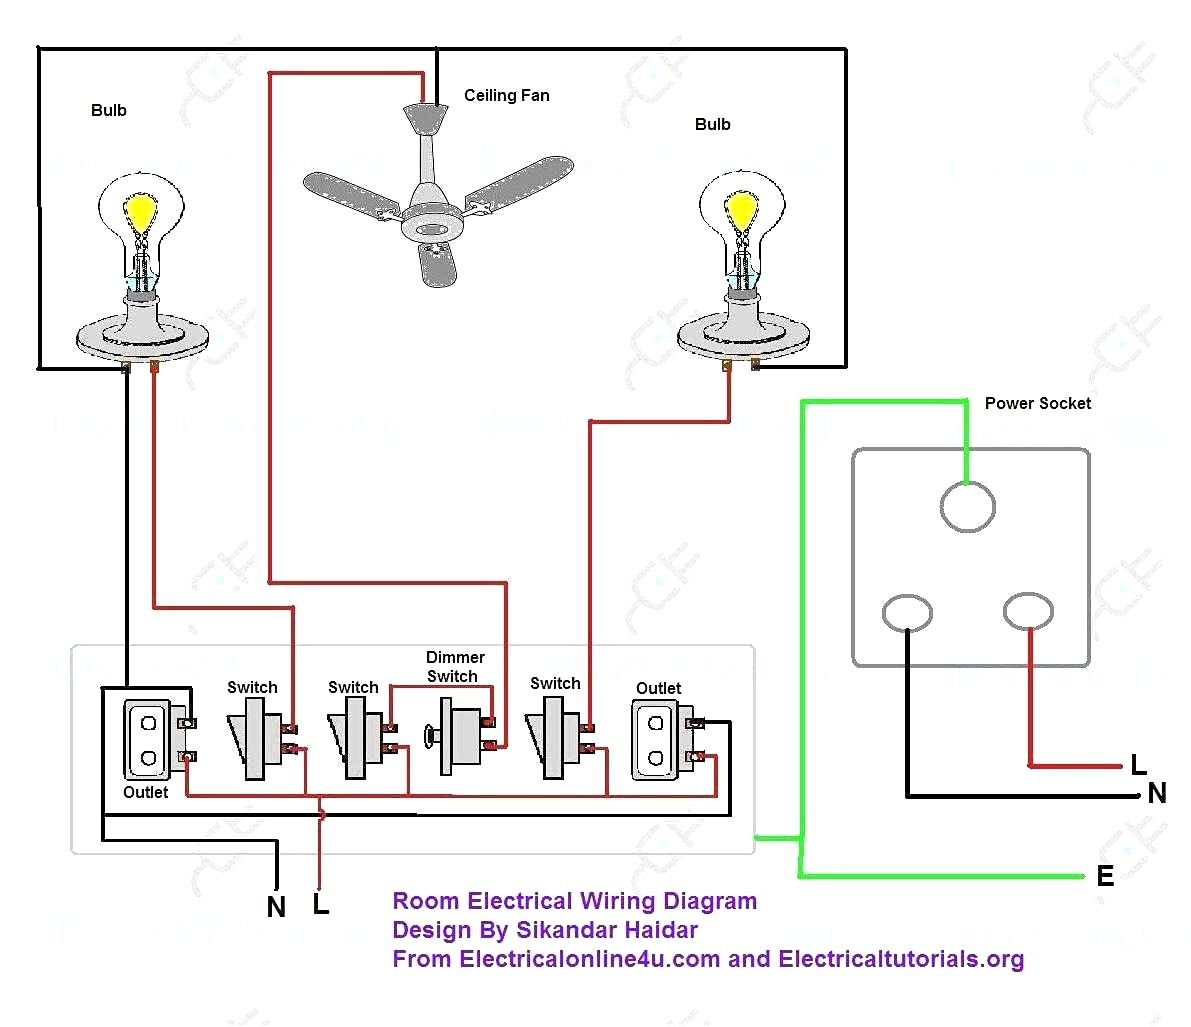 medium resolution of image result for house electrical wiring plan